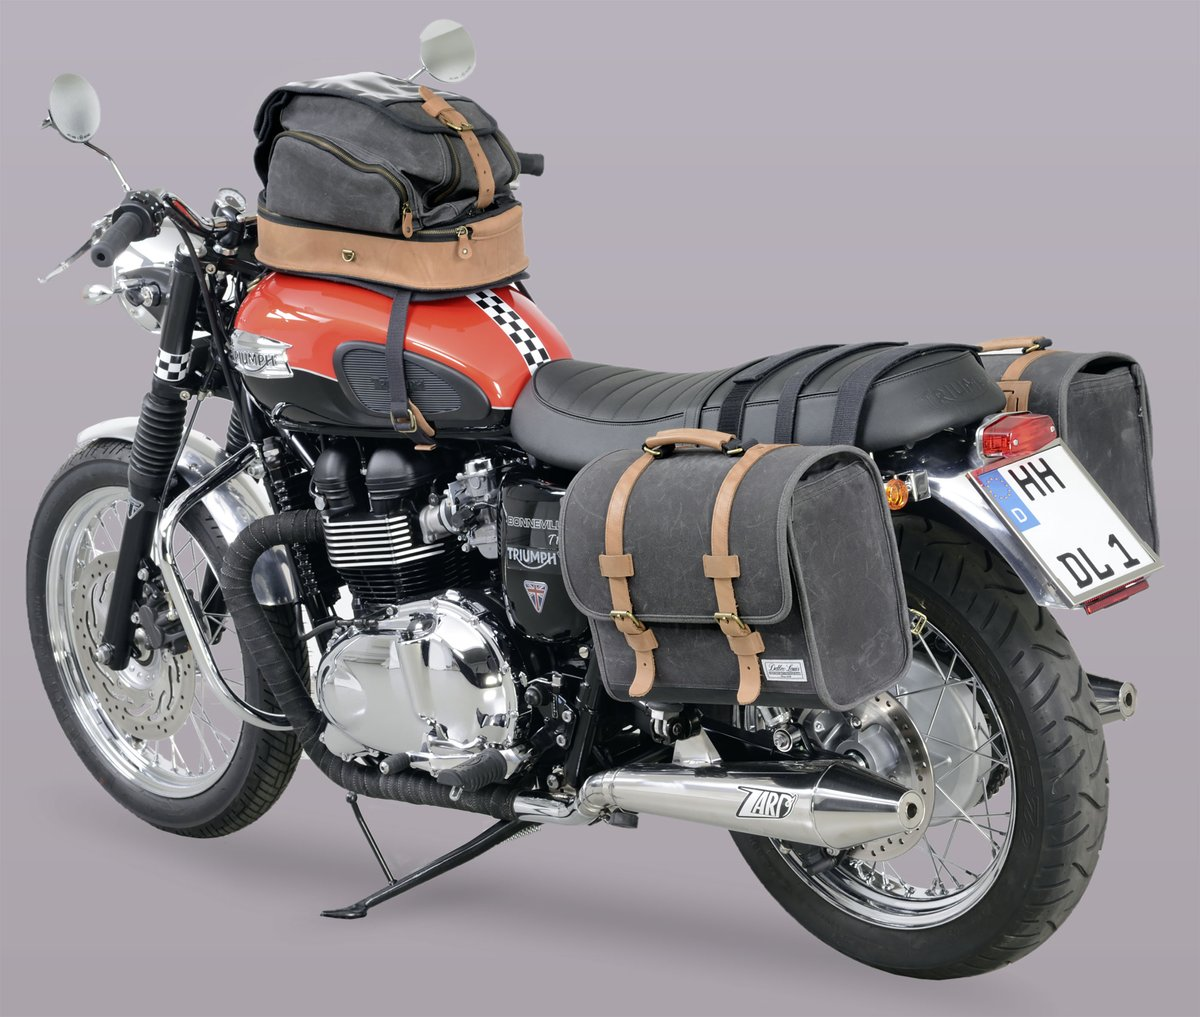 Triumph Bonneville T100 Special Custom Bike Louis Motorcycle Clothing And Technology